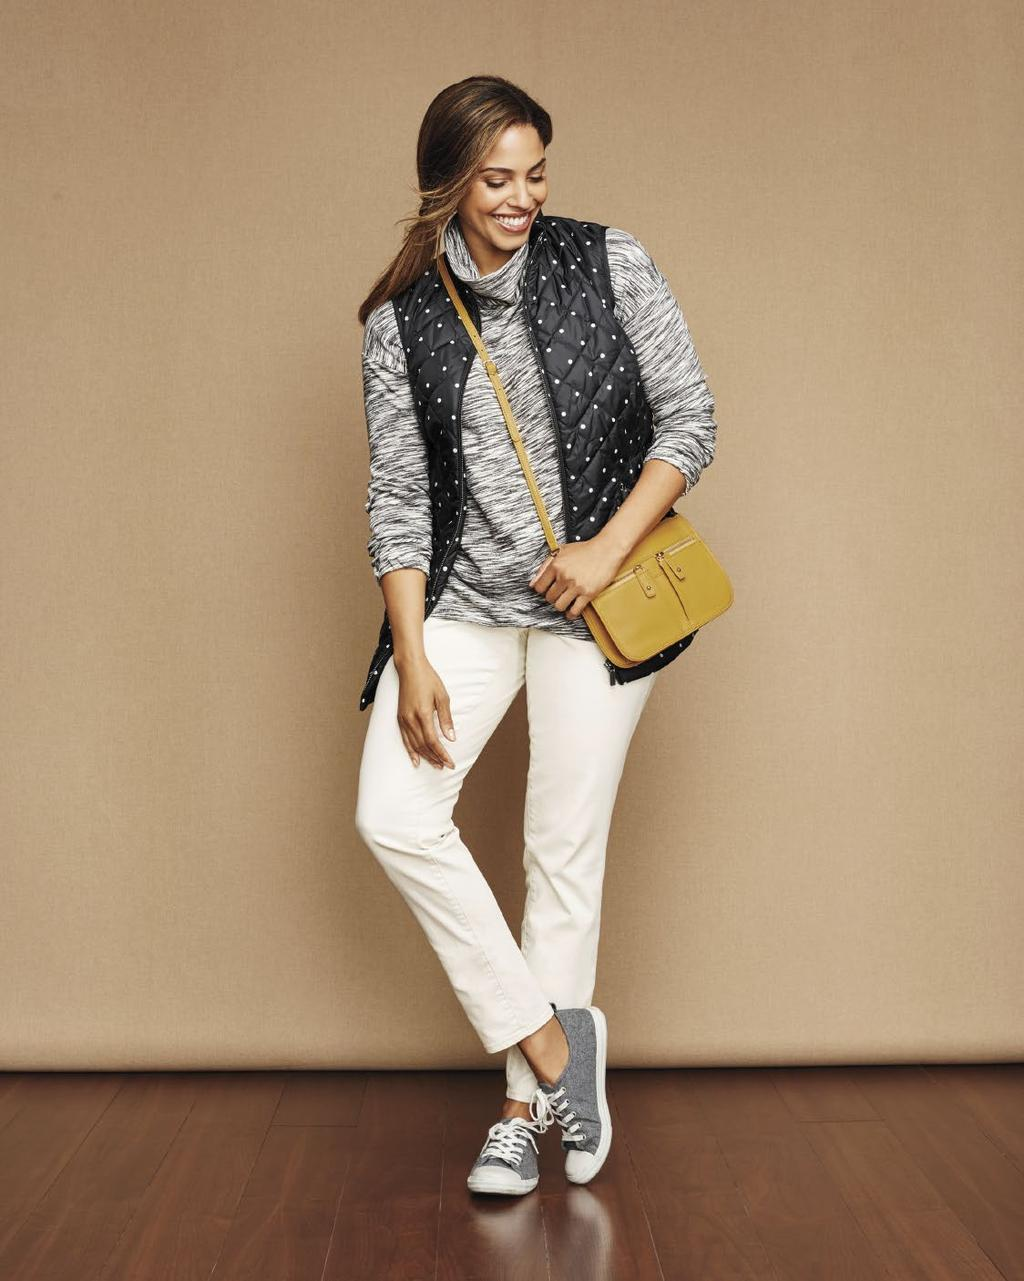 Mixing patterns in the same tones has a slimming look. Wearing thinner layers gives you warmth without looking bulky.